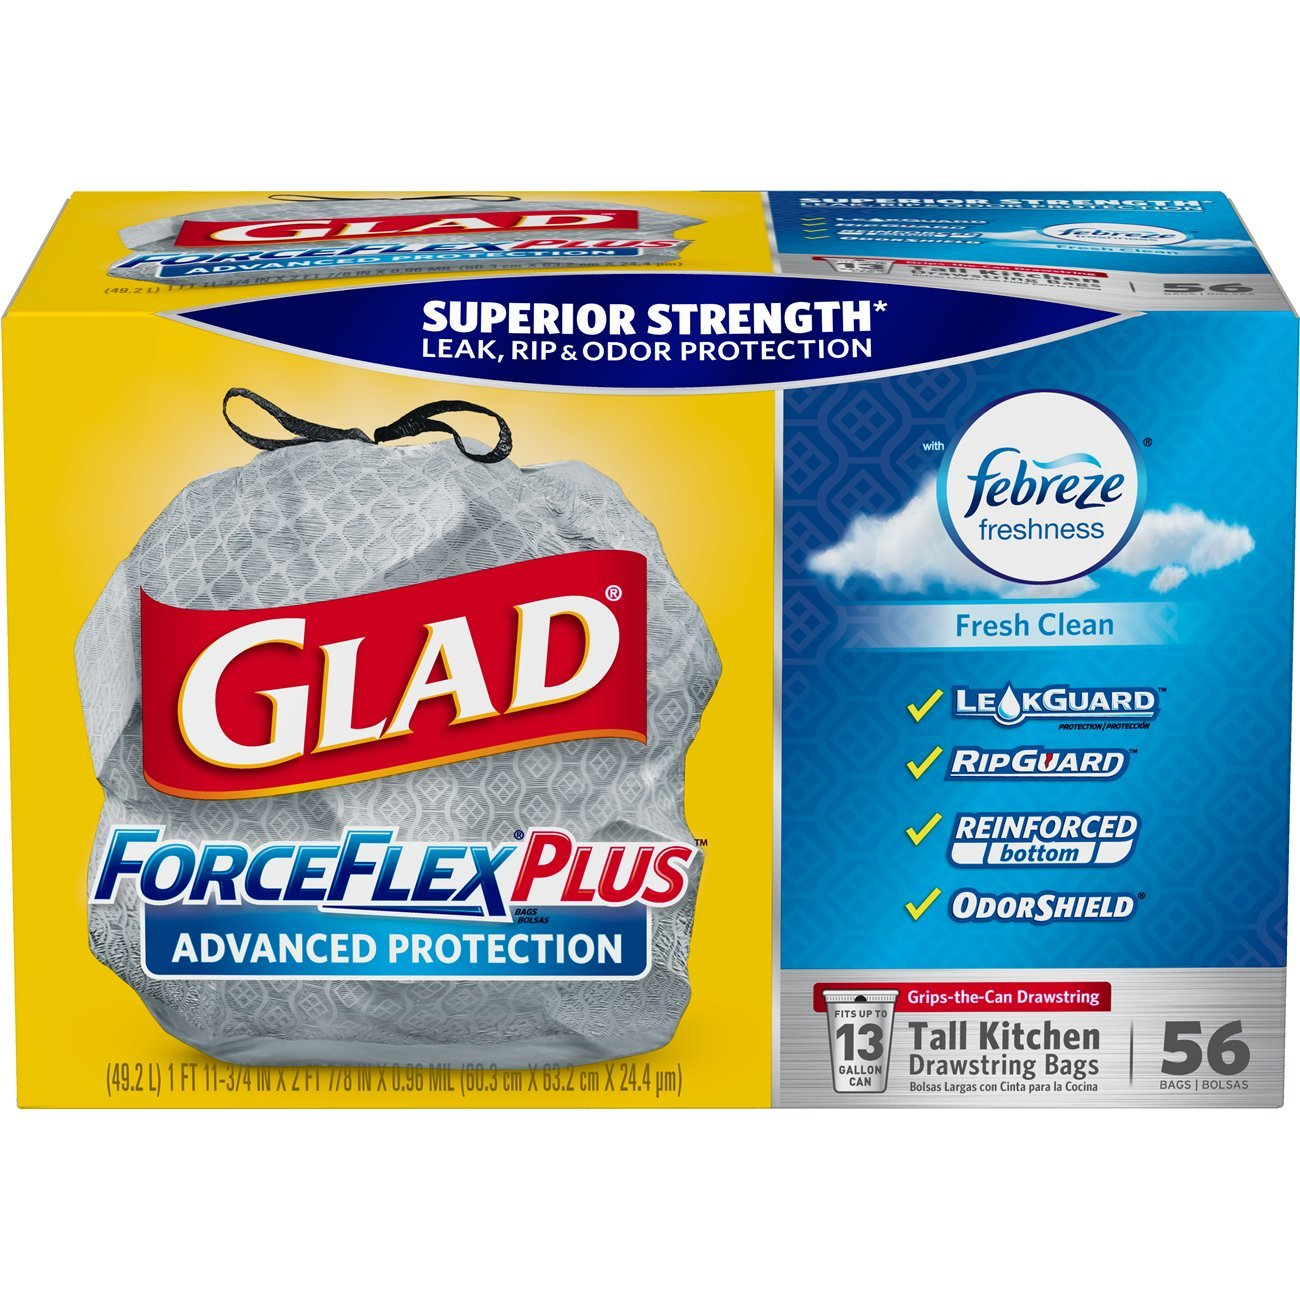 Glad ForceFlexPlus Advanced Protection Tall Kitchen Drawstring Trash Bags - Febreze Fresh Clean -13 Gallon - 56 Count (Packaging May Vary)